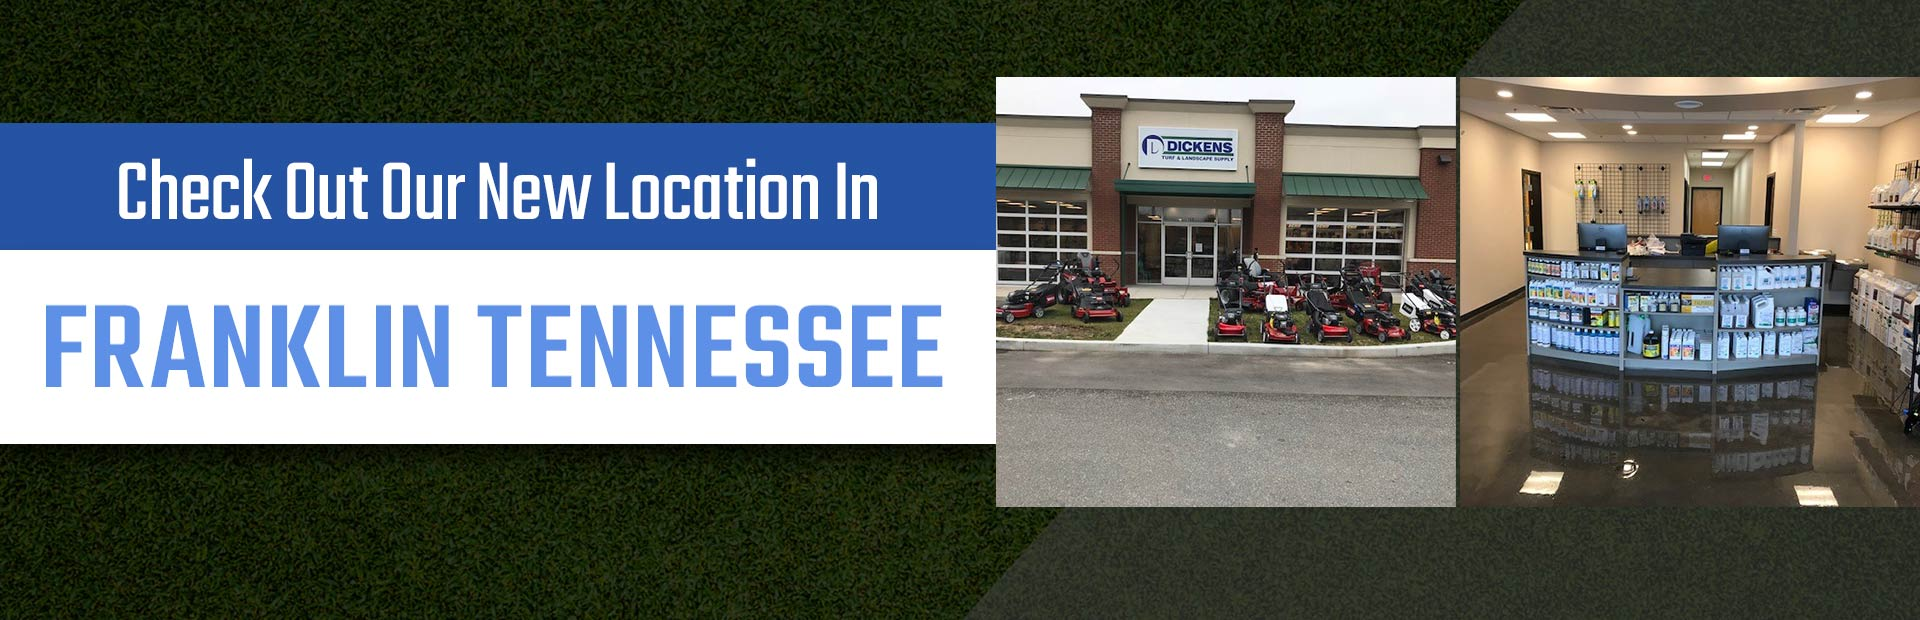 Check out our new location in Franklin Tennessee! Come visit us soon!